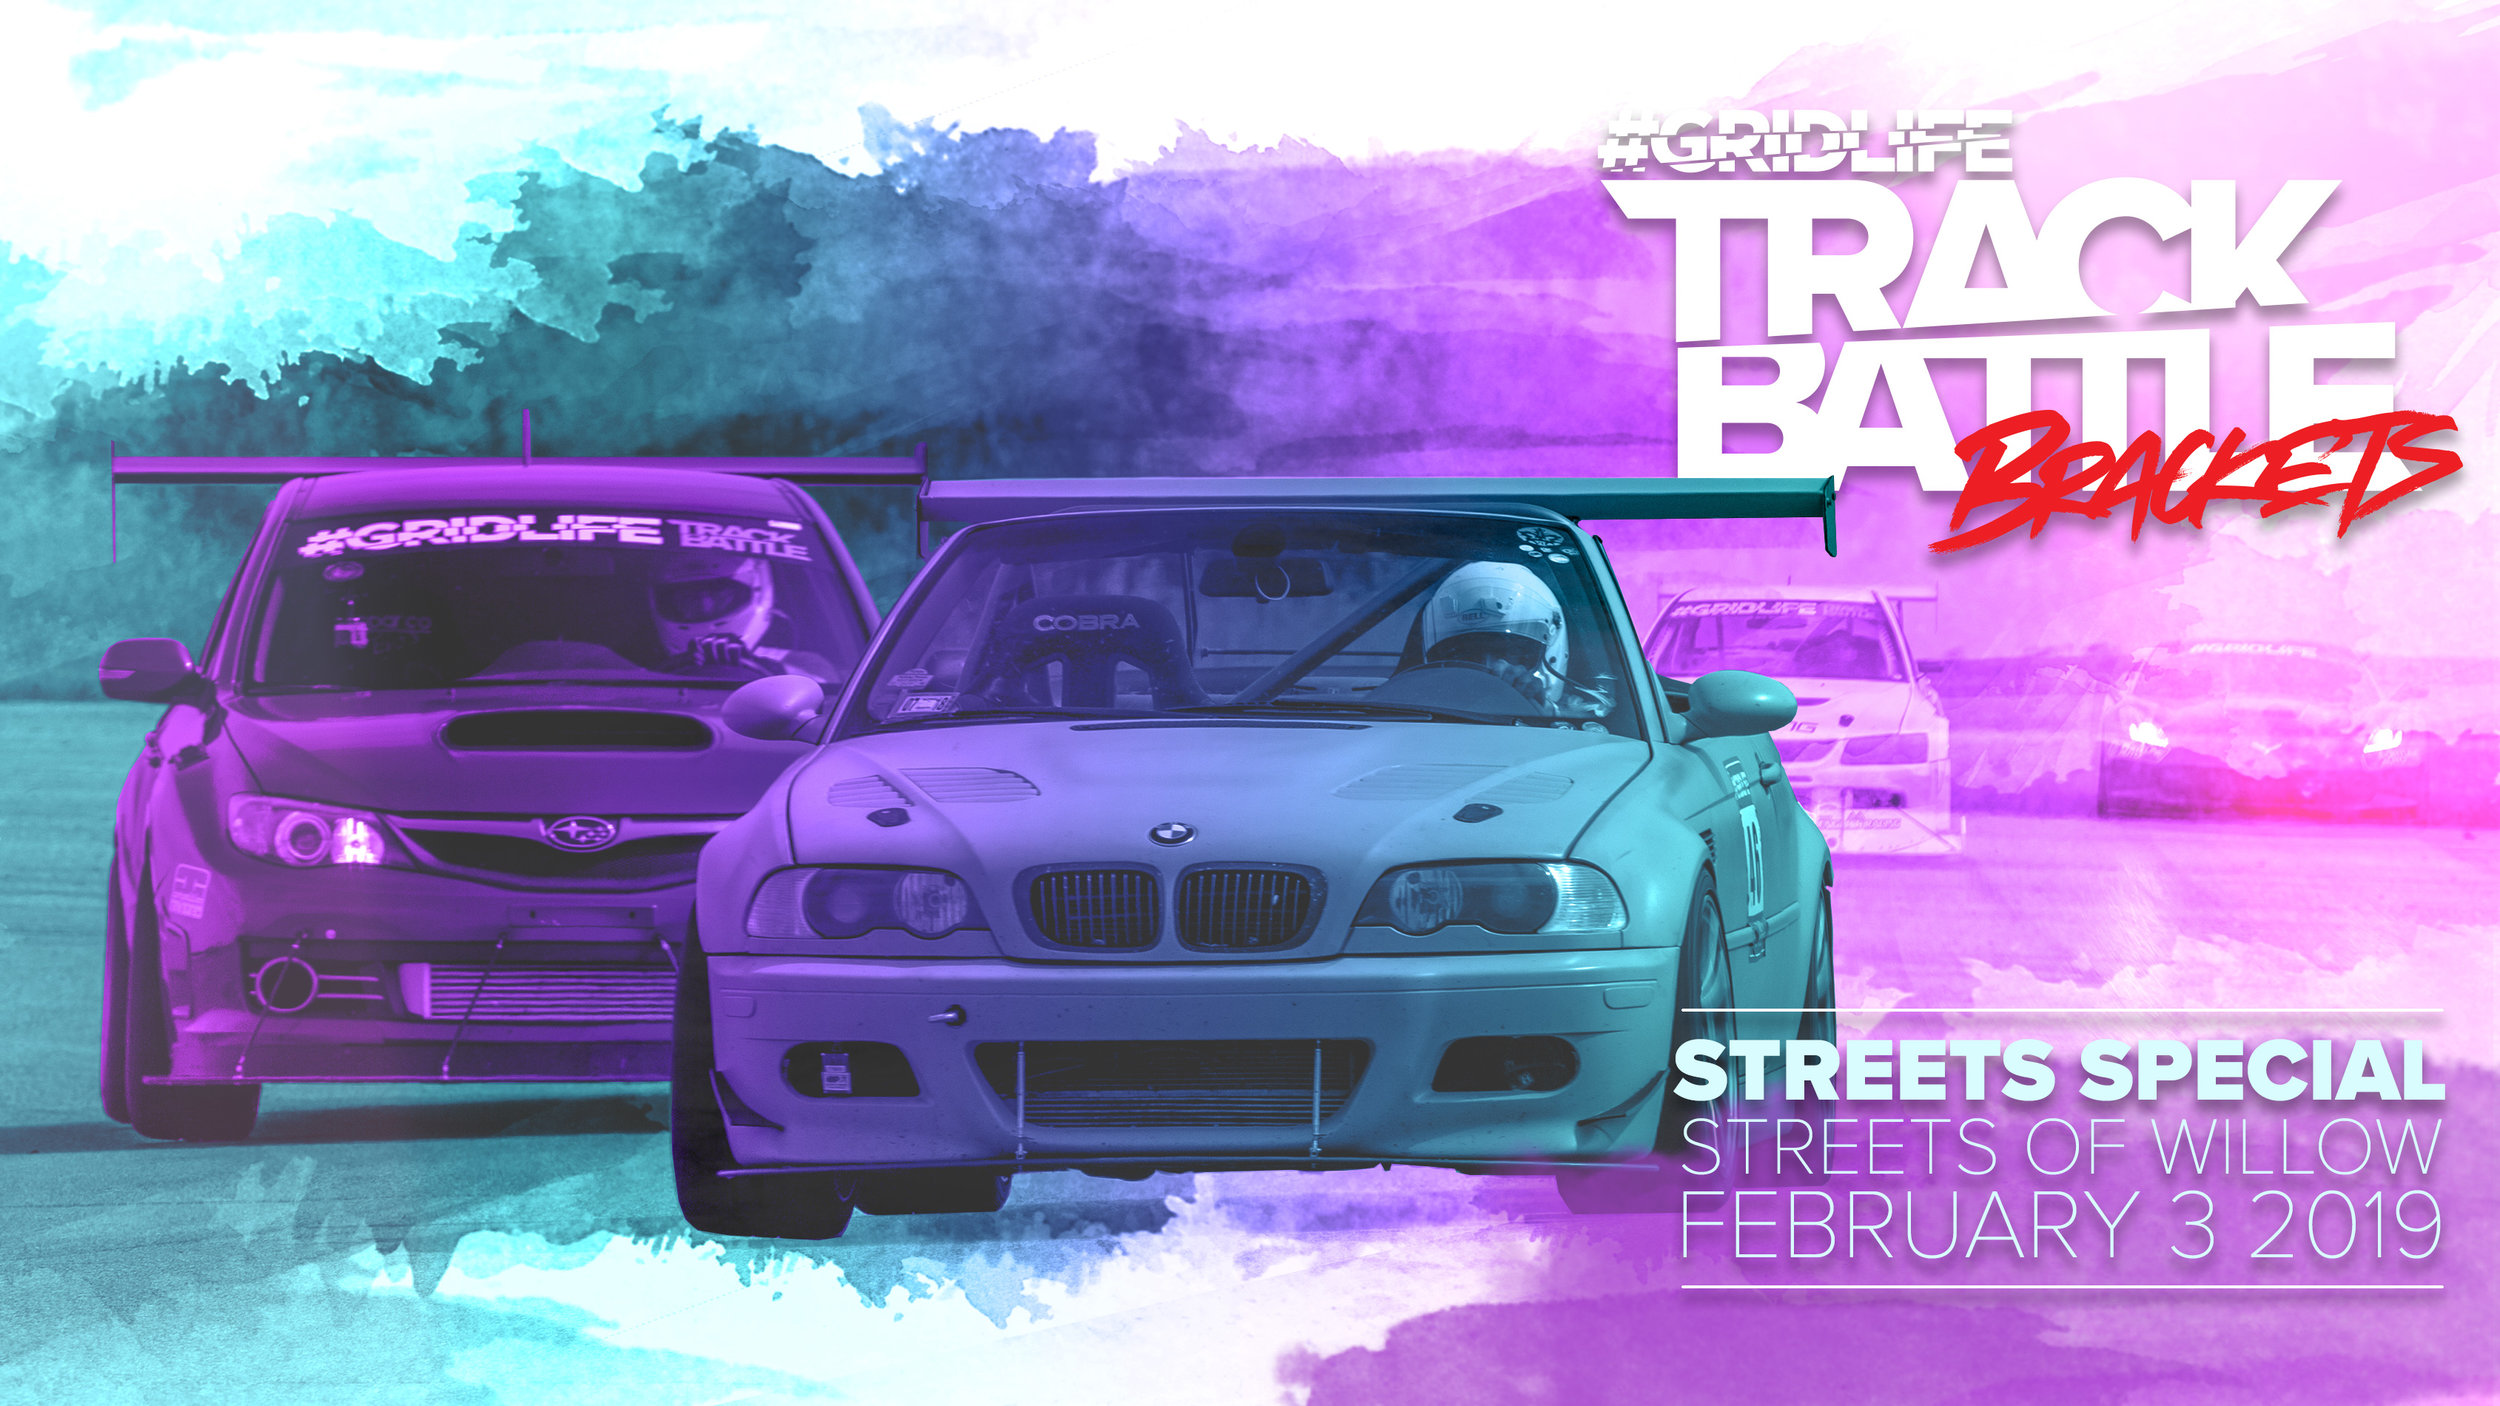 Streets Of Willow >> Gridlife Trackbattle Brackets Streets Special Willow